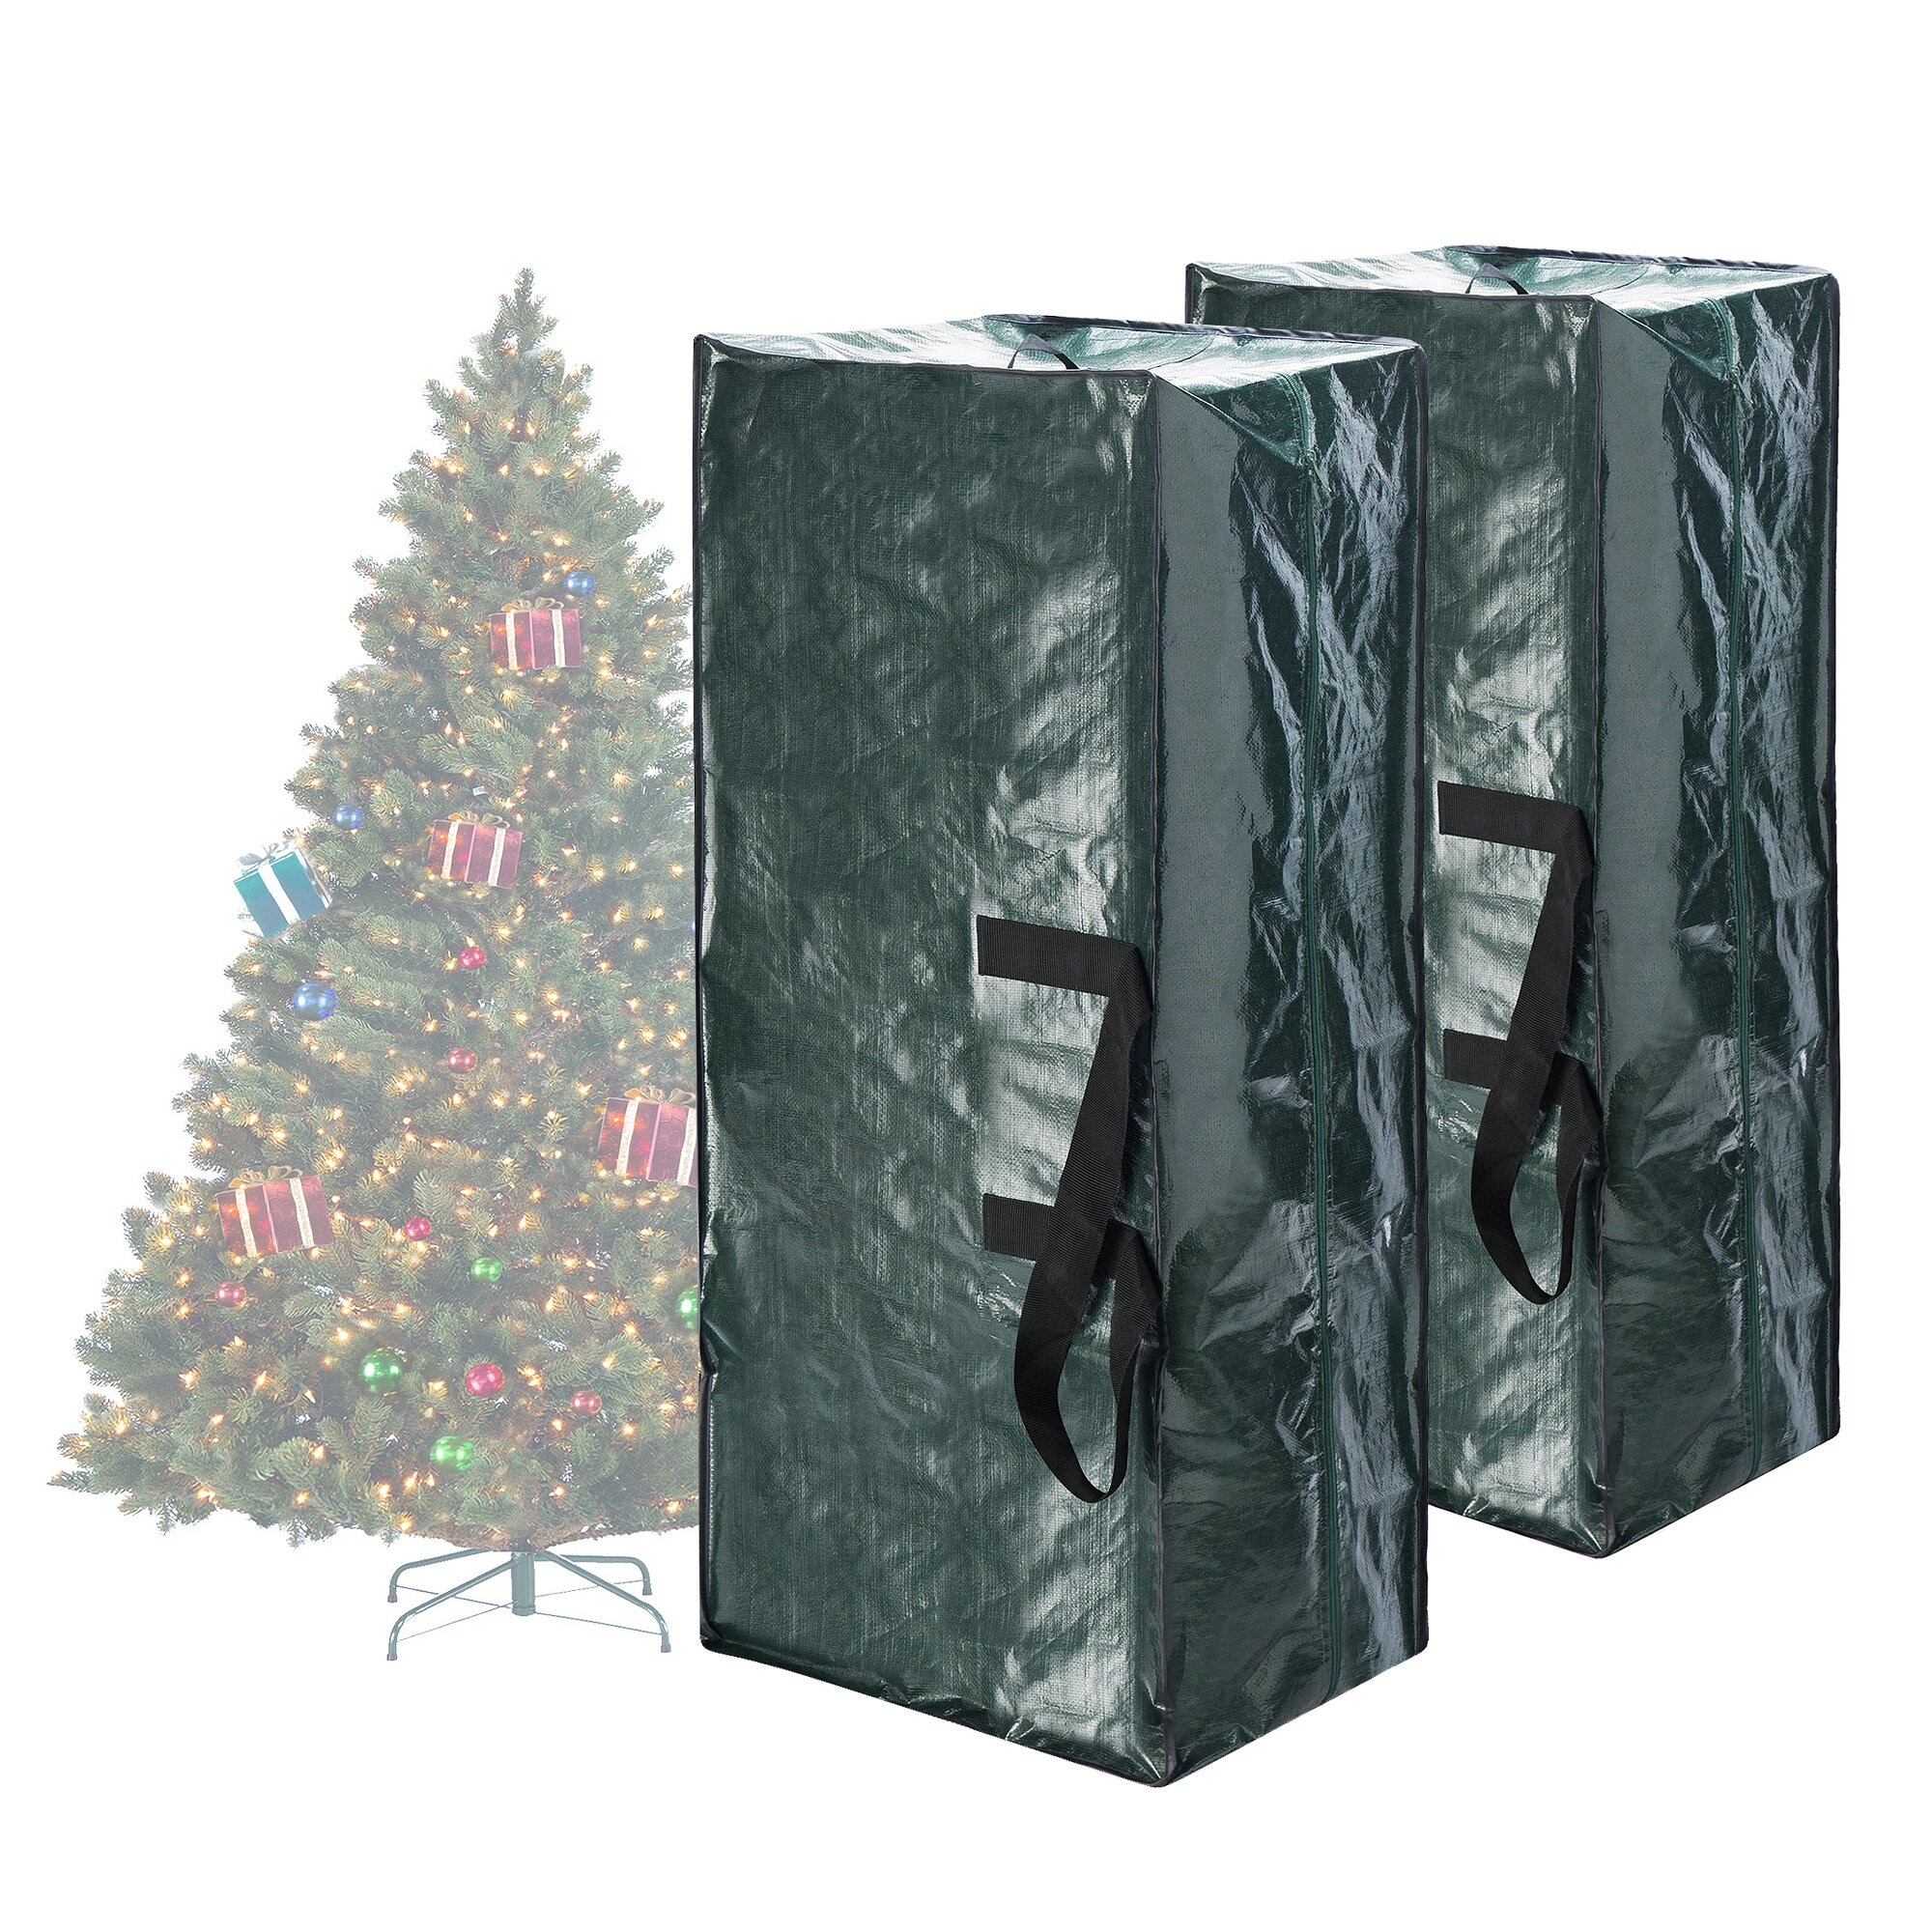 Elf Stor Premium Christmas Tree Storage Bag | Wayfair